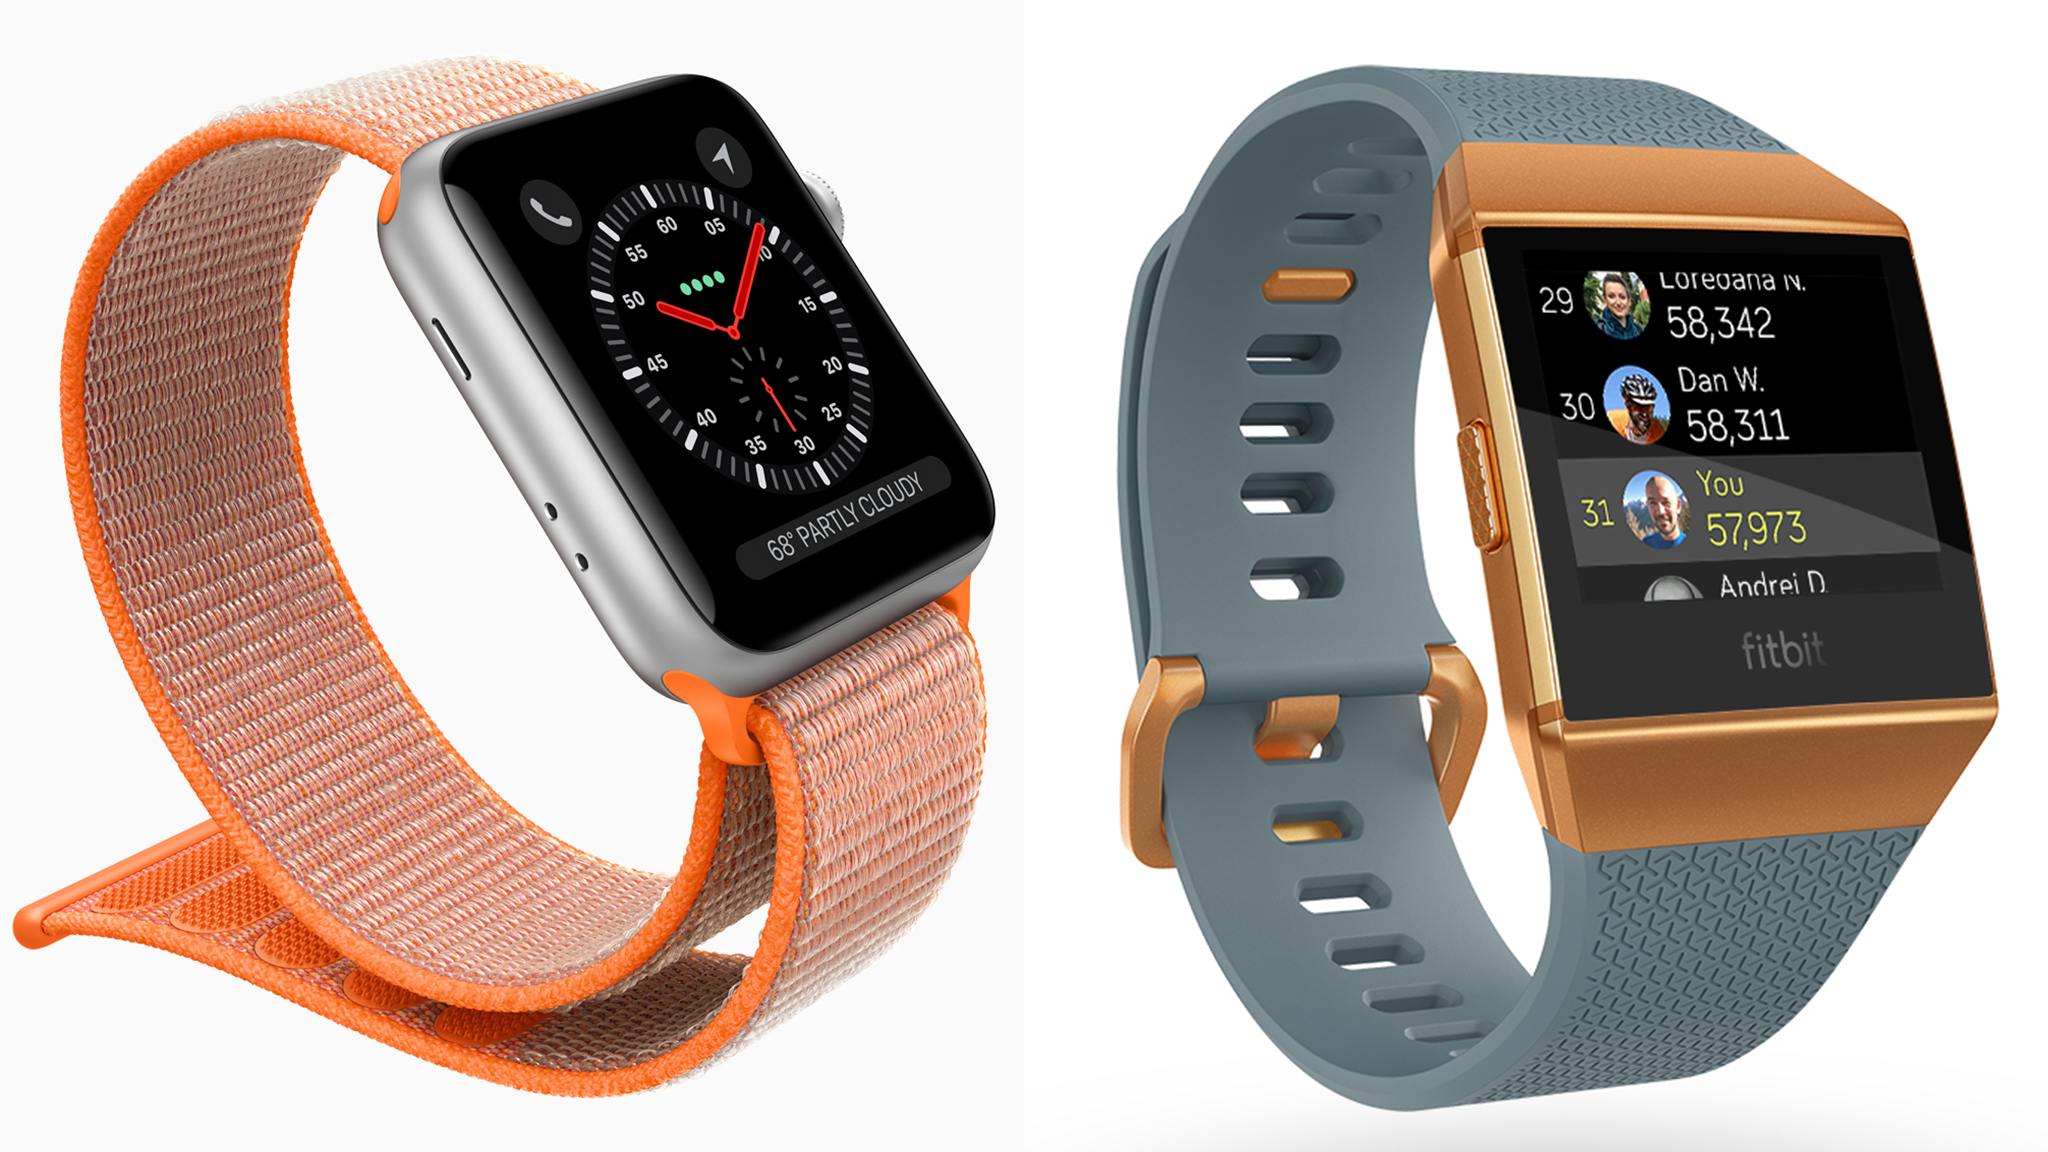 looks watches color expensive colors phone design option for iphone insider gold report a rumors the i that like super business launching says watch rose new apple is